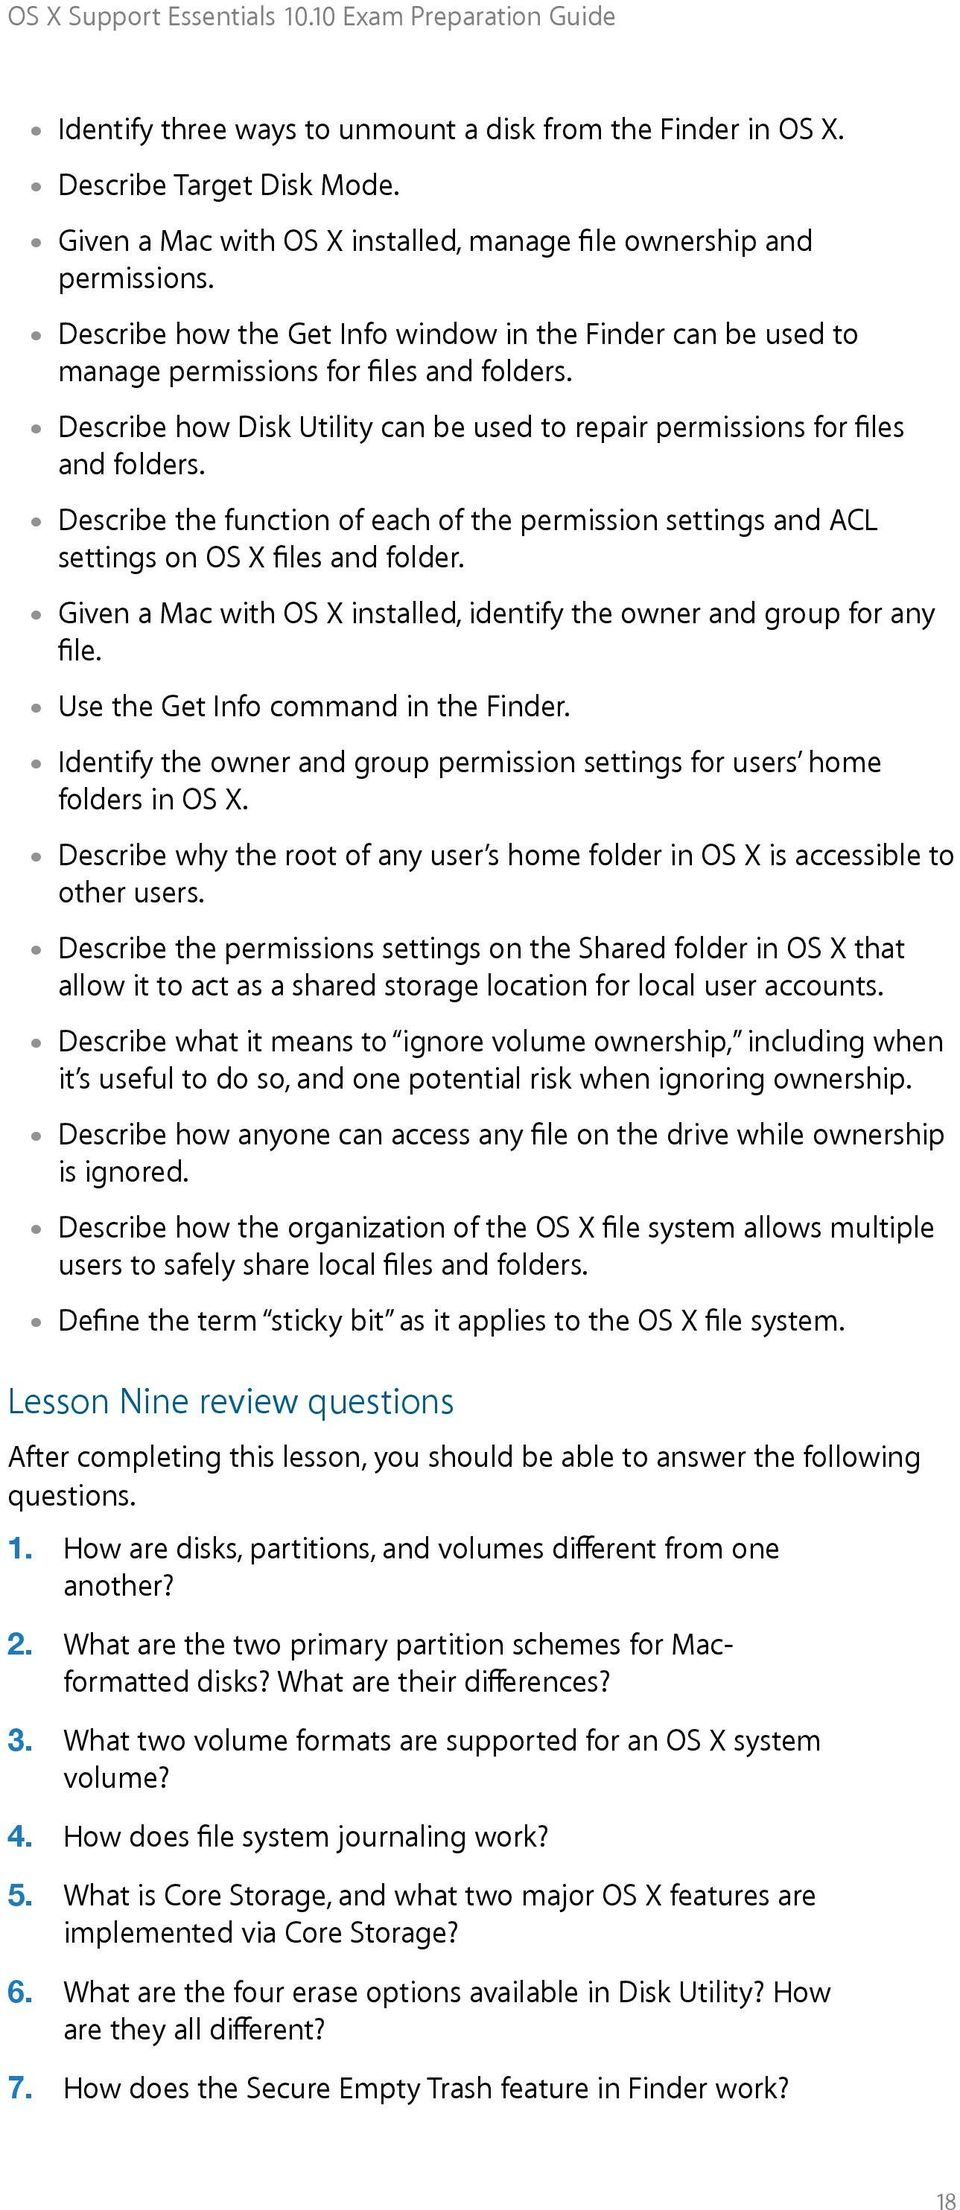 Describe the function of each of the permission settings and ACL settings on OS X files and folder. Given a Mac with OS X installed, identify the owner and group for any file.